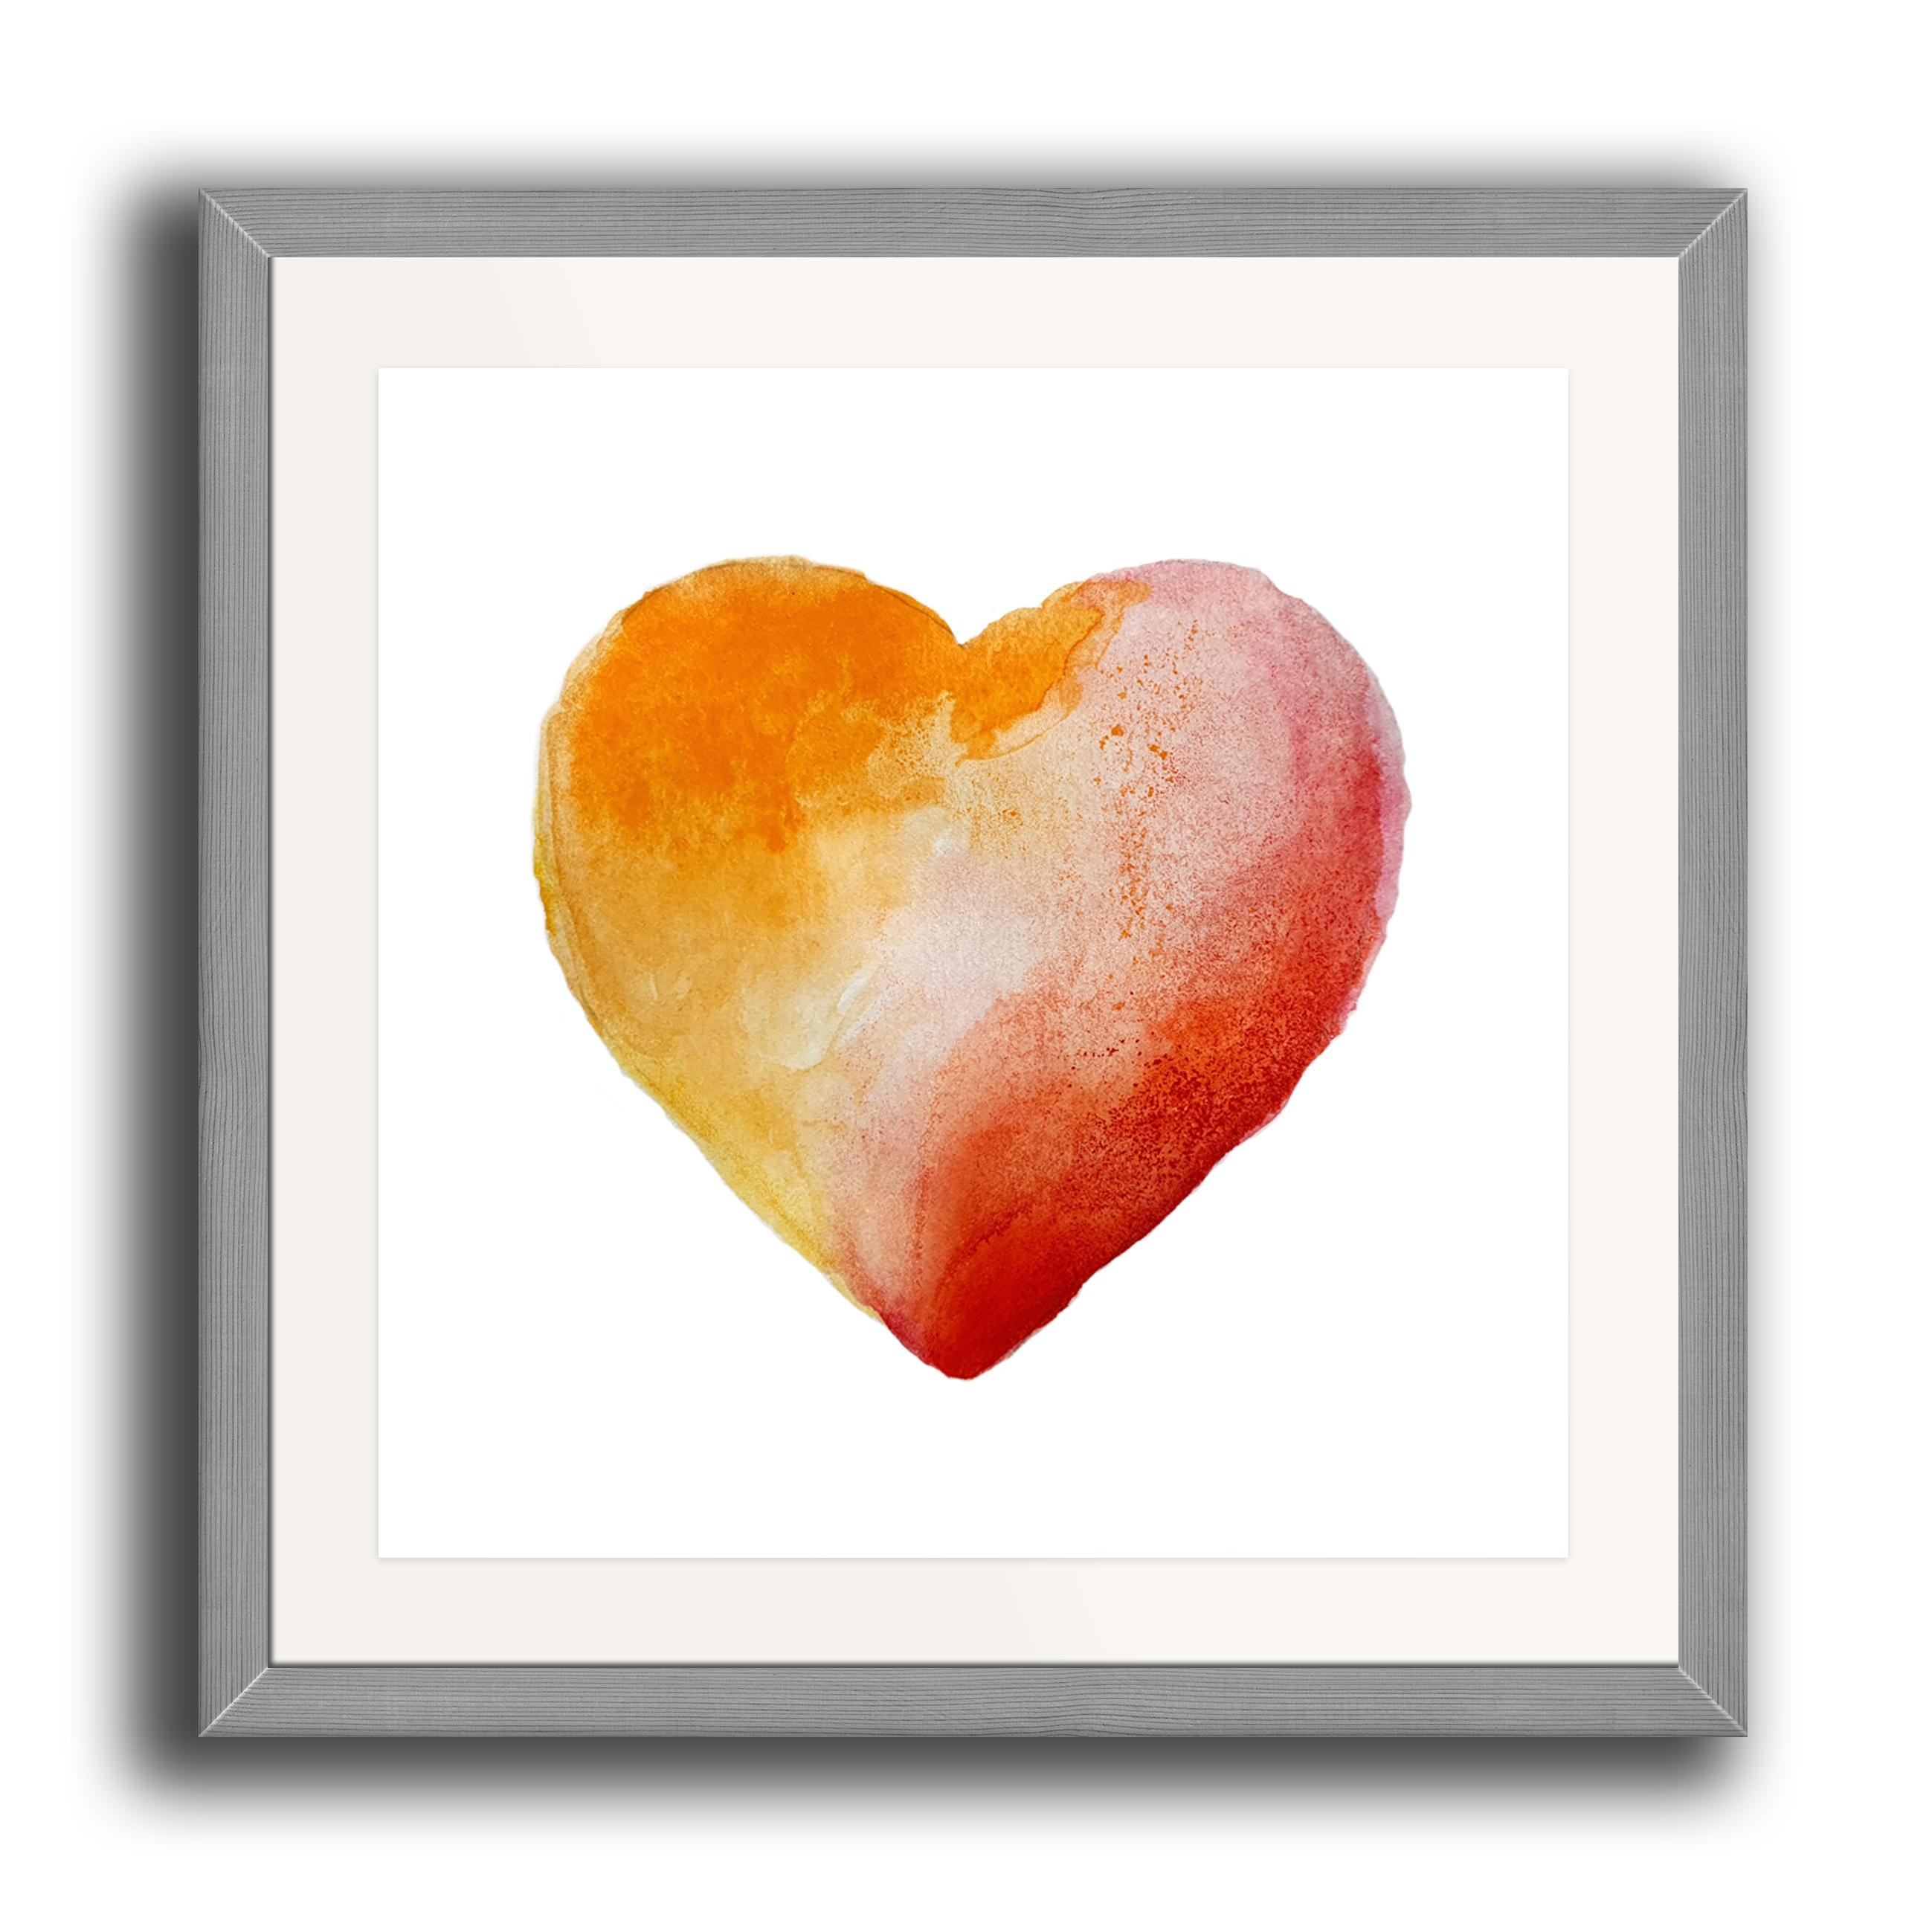 A watercolour print by Clarrie-Anne on eco fine art paper titled Warm Heart showing read and orange watercolour wash heart on a white background. The image is set in a grey coloured picture frame.